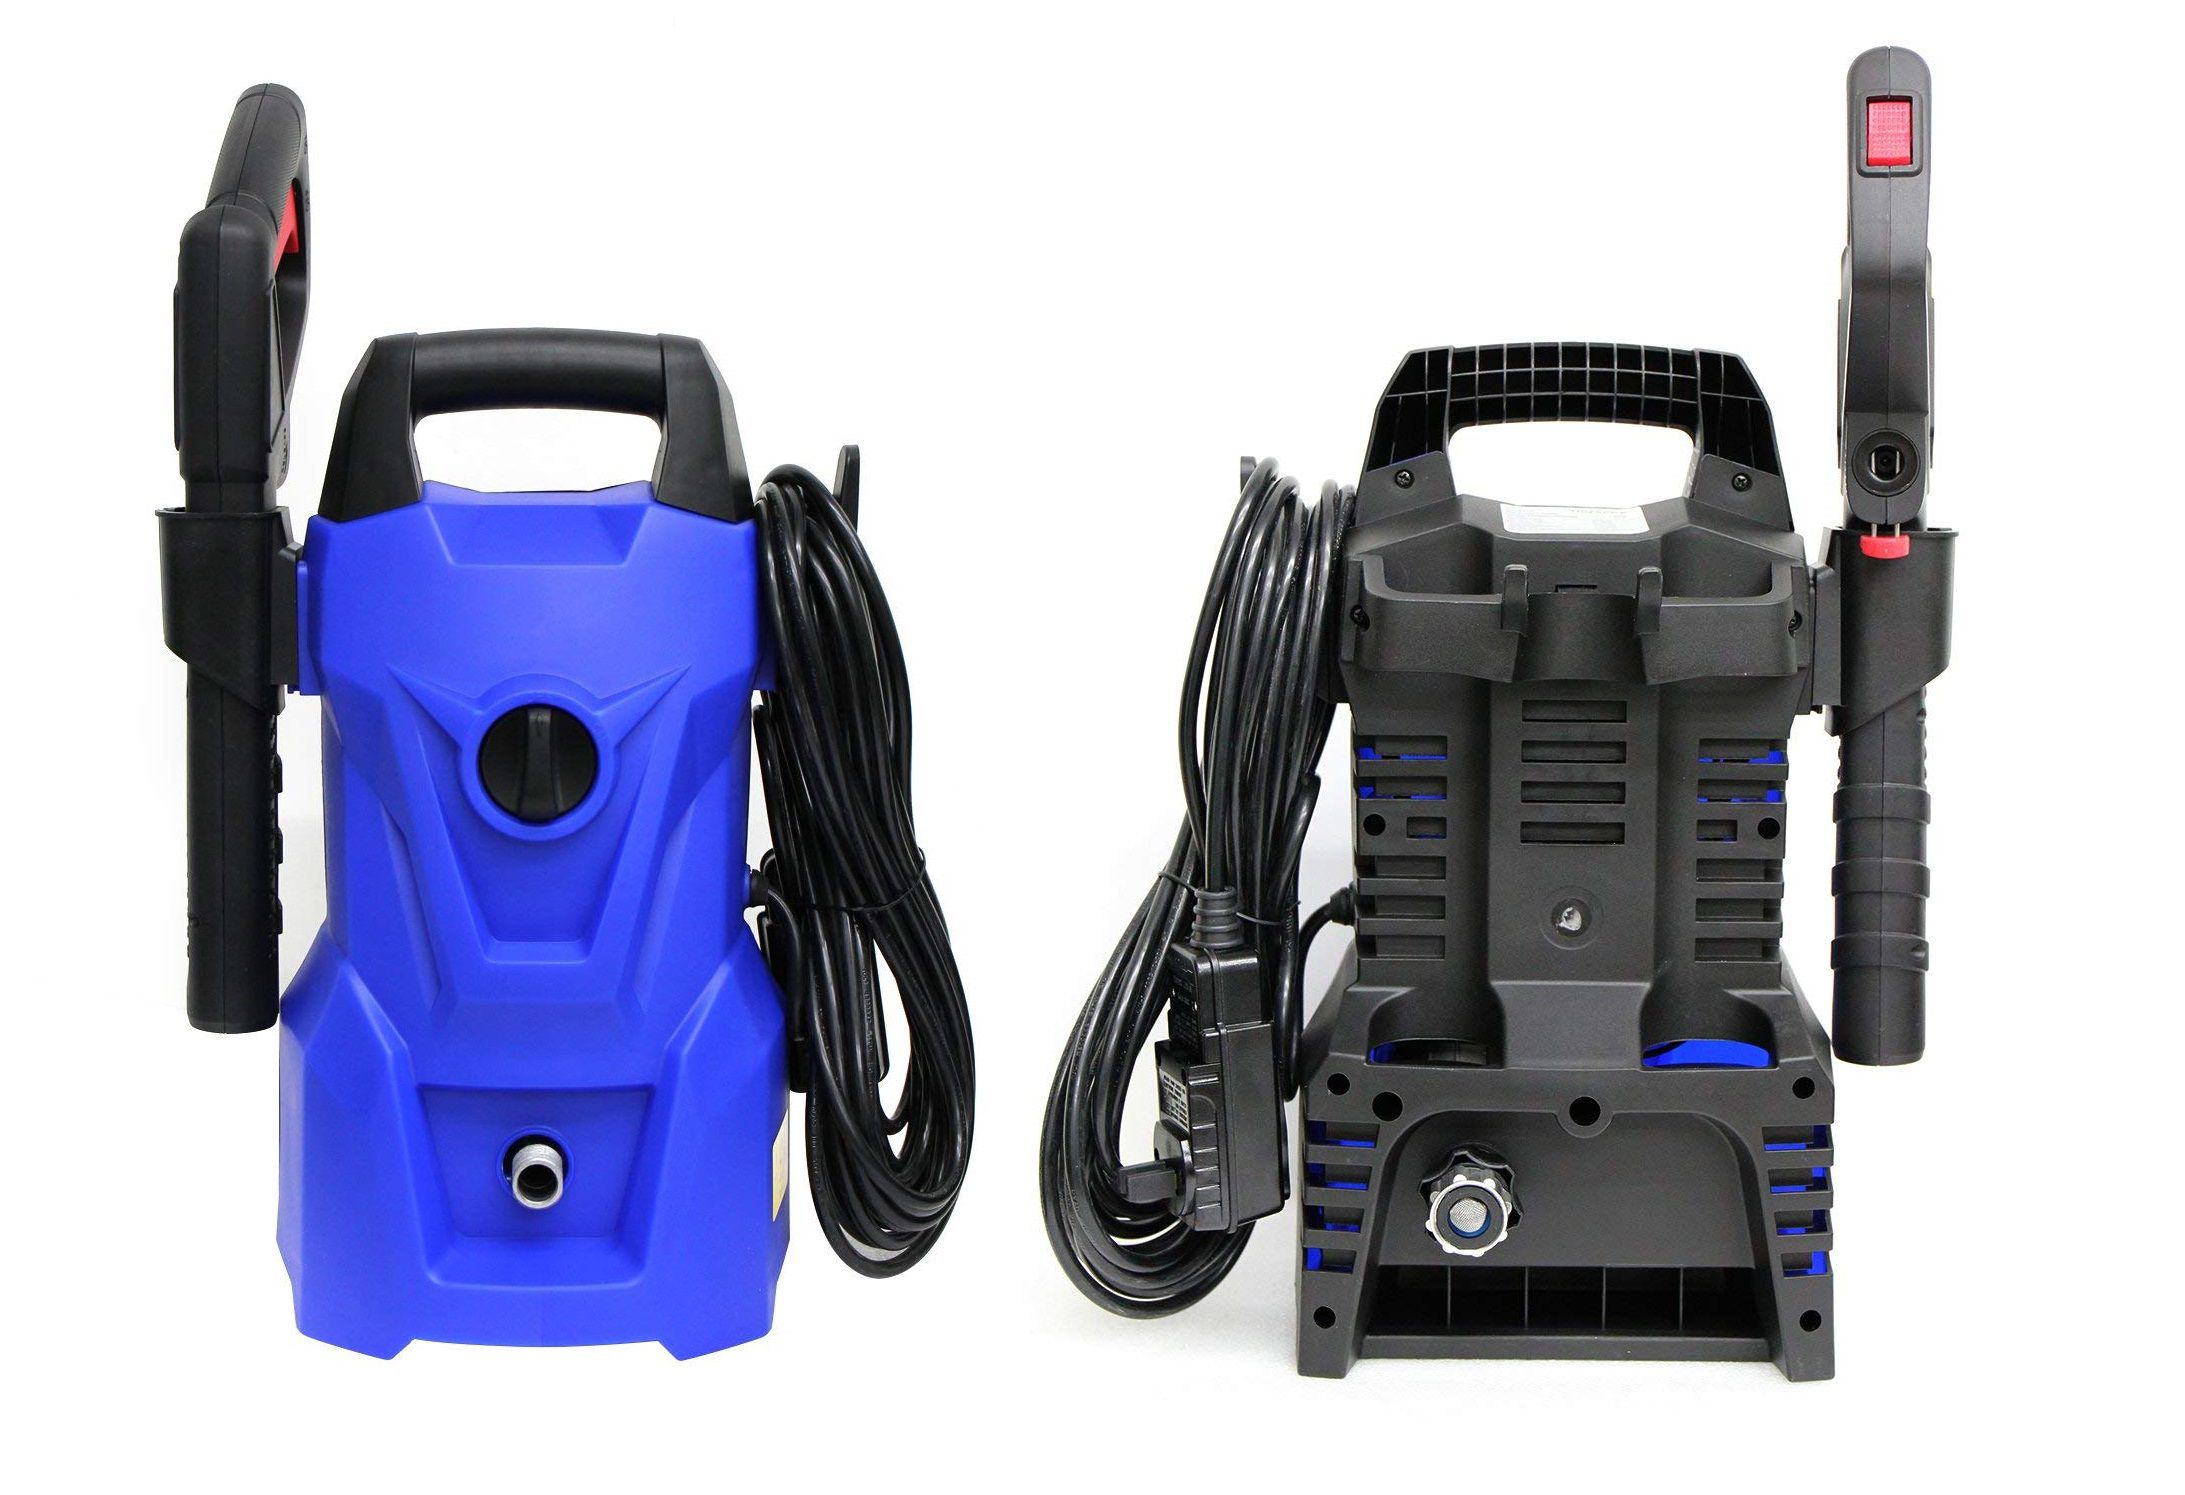 Azure Sky Electric Power Washer